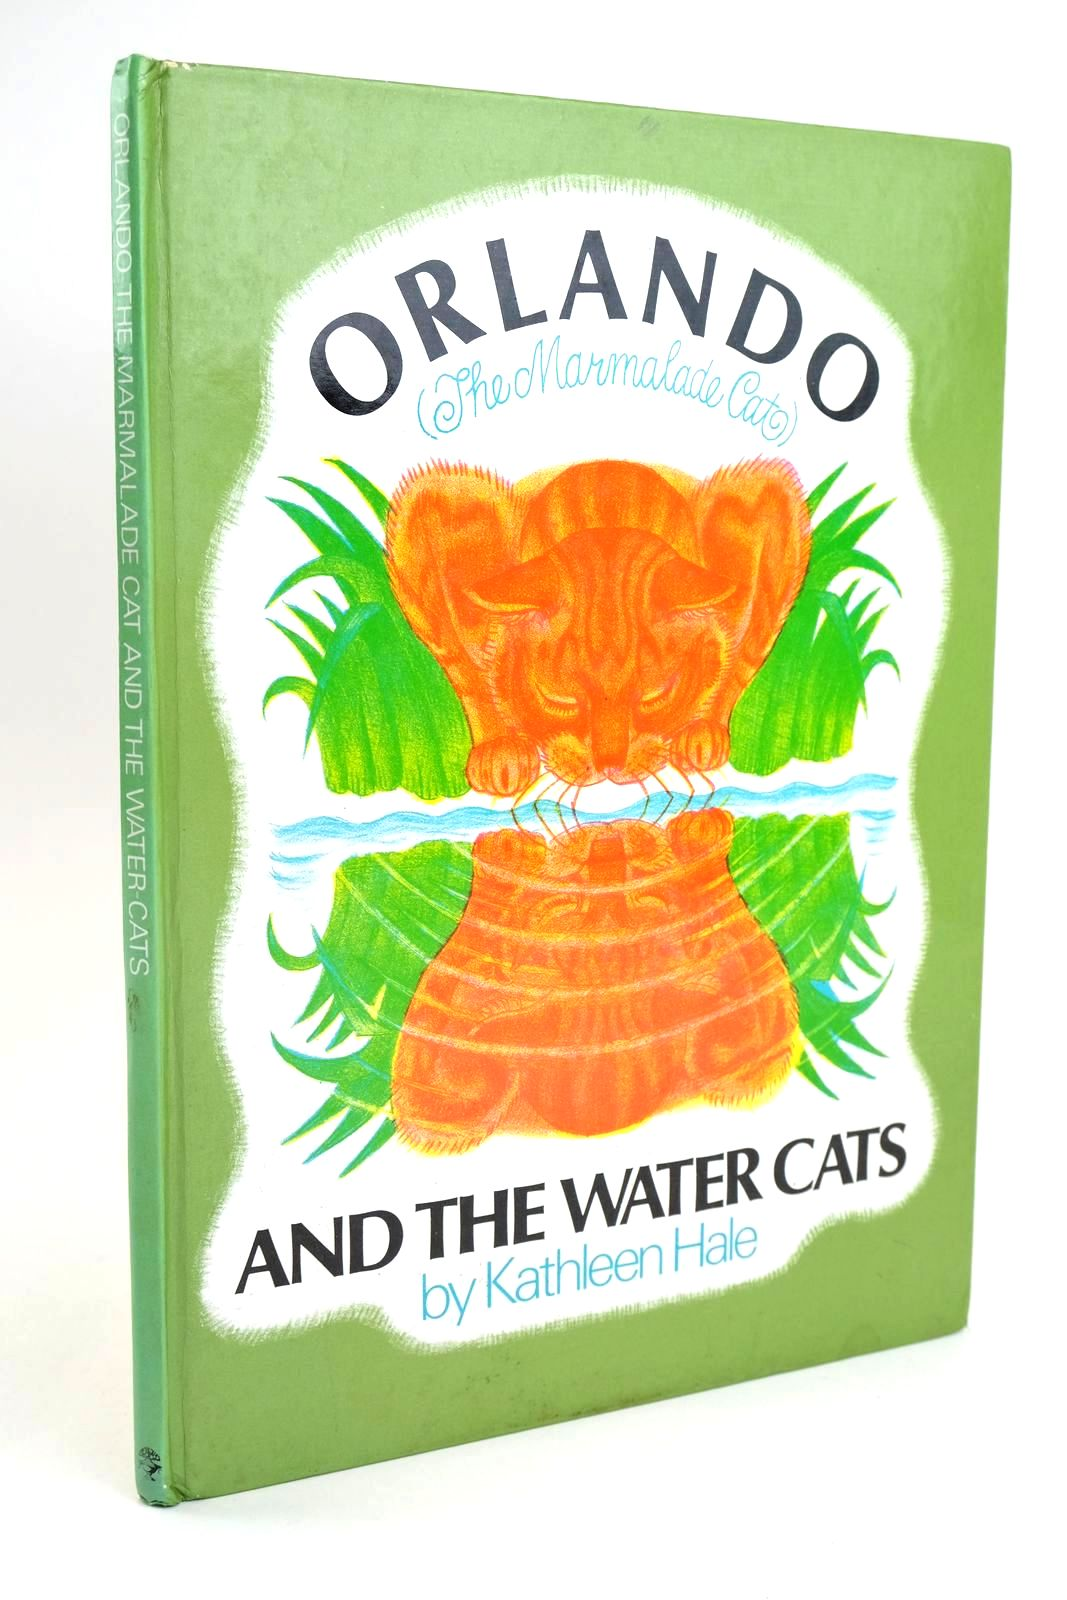 Photo of ORLANDO (THE MARMALADE CAT) AND THE WATER CATS- Stock Number: 1319223